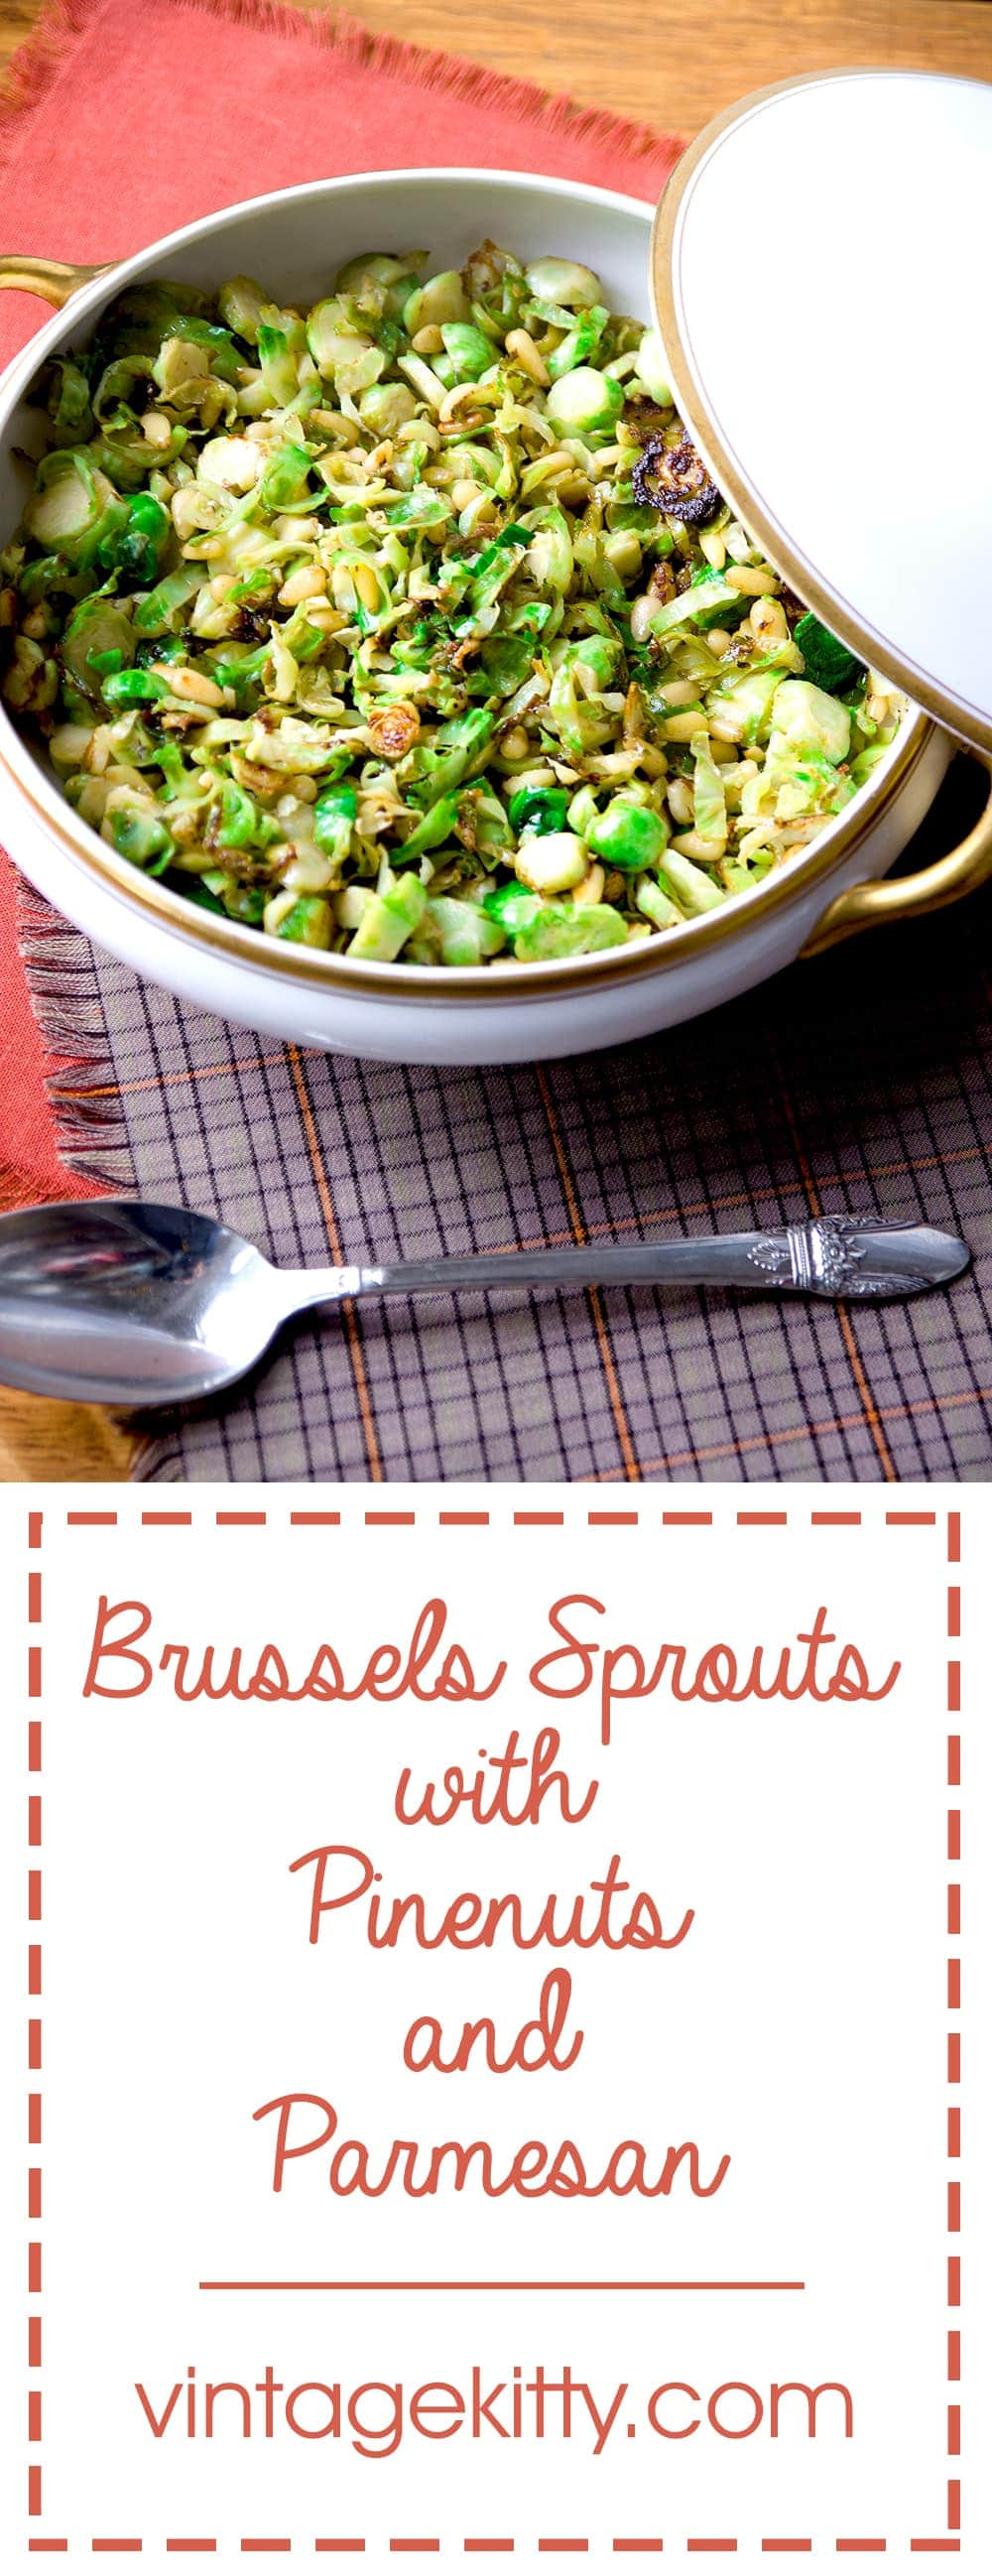 Easy Brussels Sprouts with Pinenuts and Parmesan is a go-to fall recipe. Its fast, contains just a handful of ingredients, and is perfect for any meal, from a weeknight supper to holiday get-togethers | vintagekitty.com